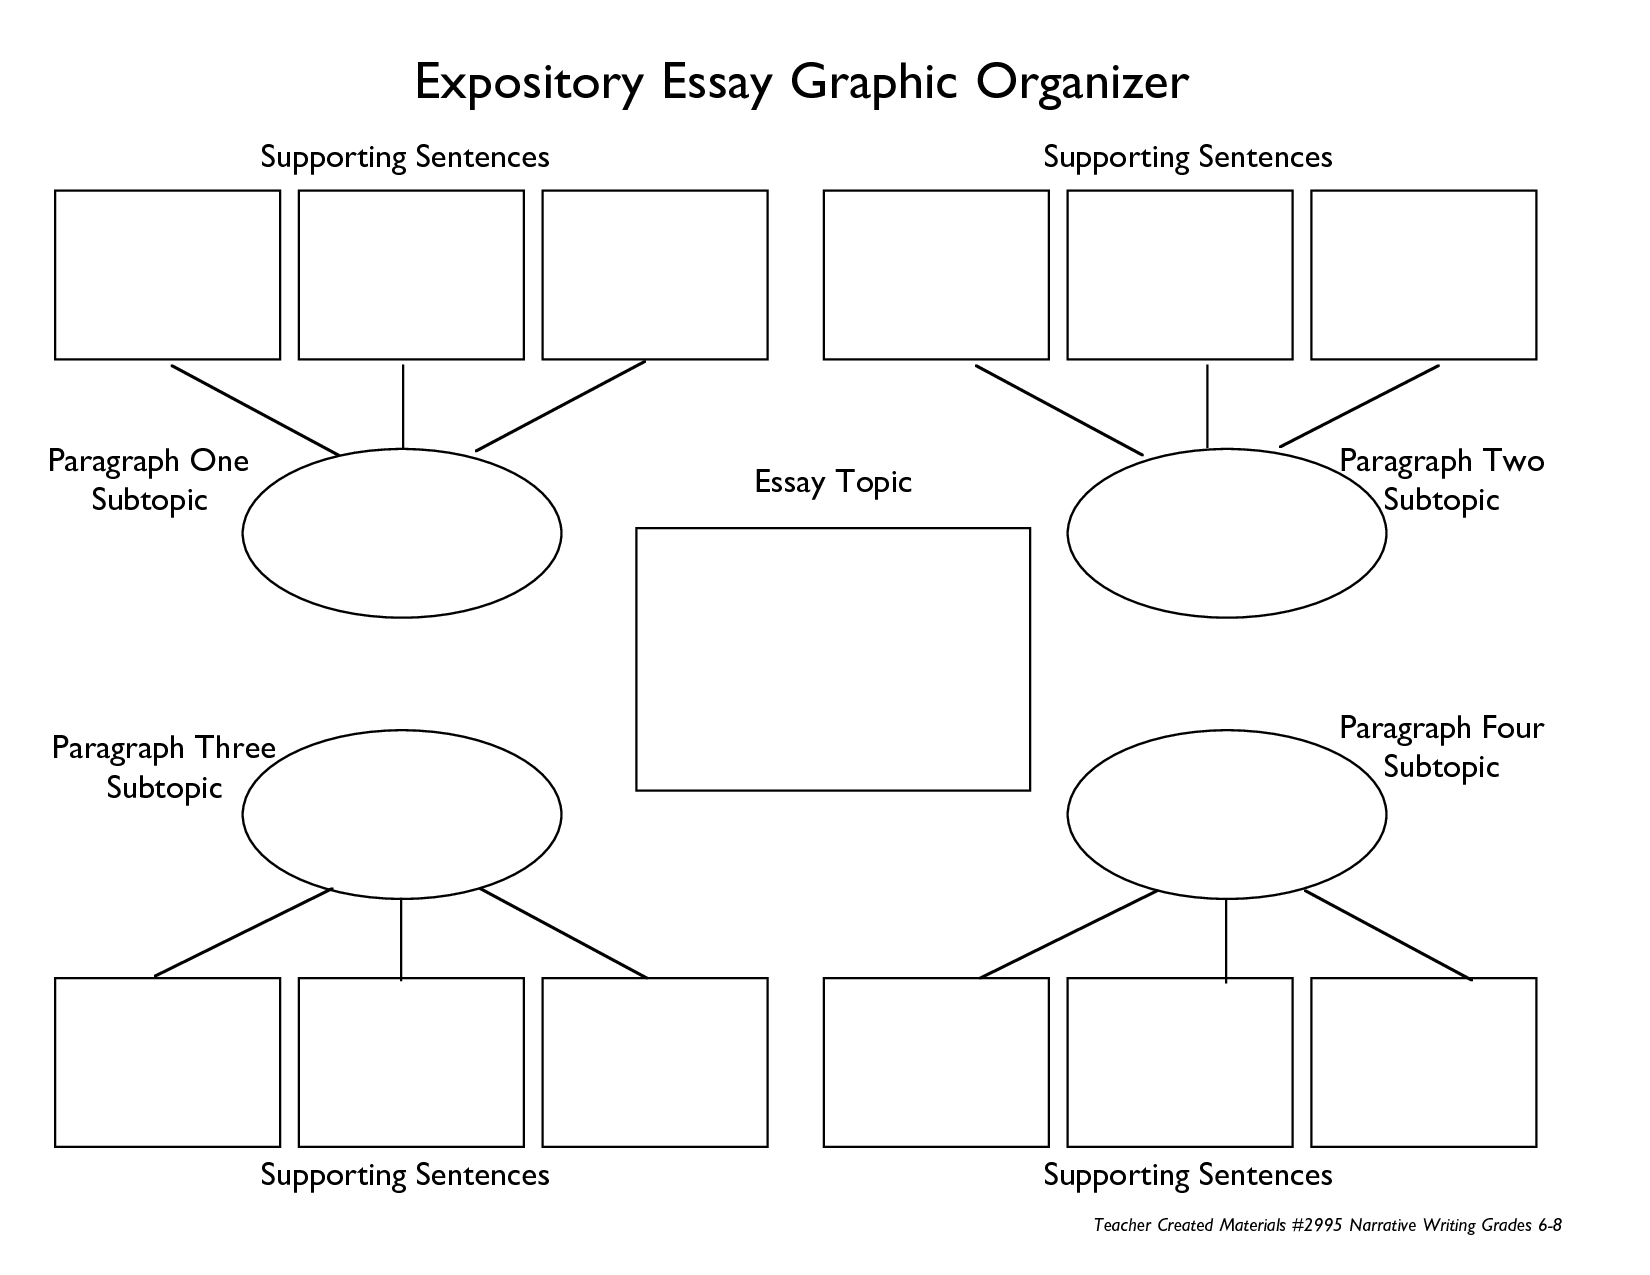 5 paragraph narrative essay graphic organizer